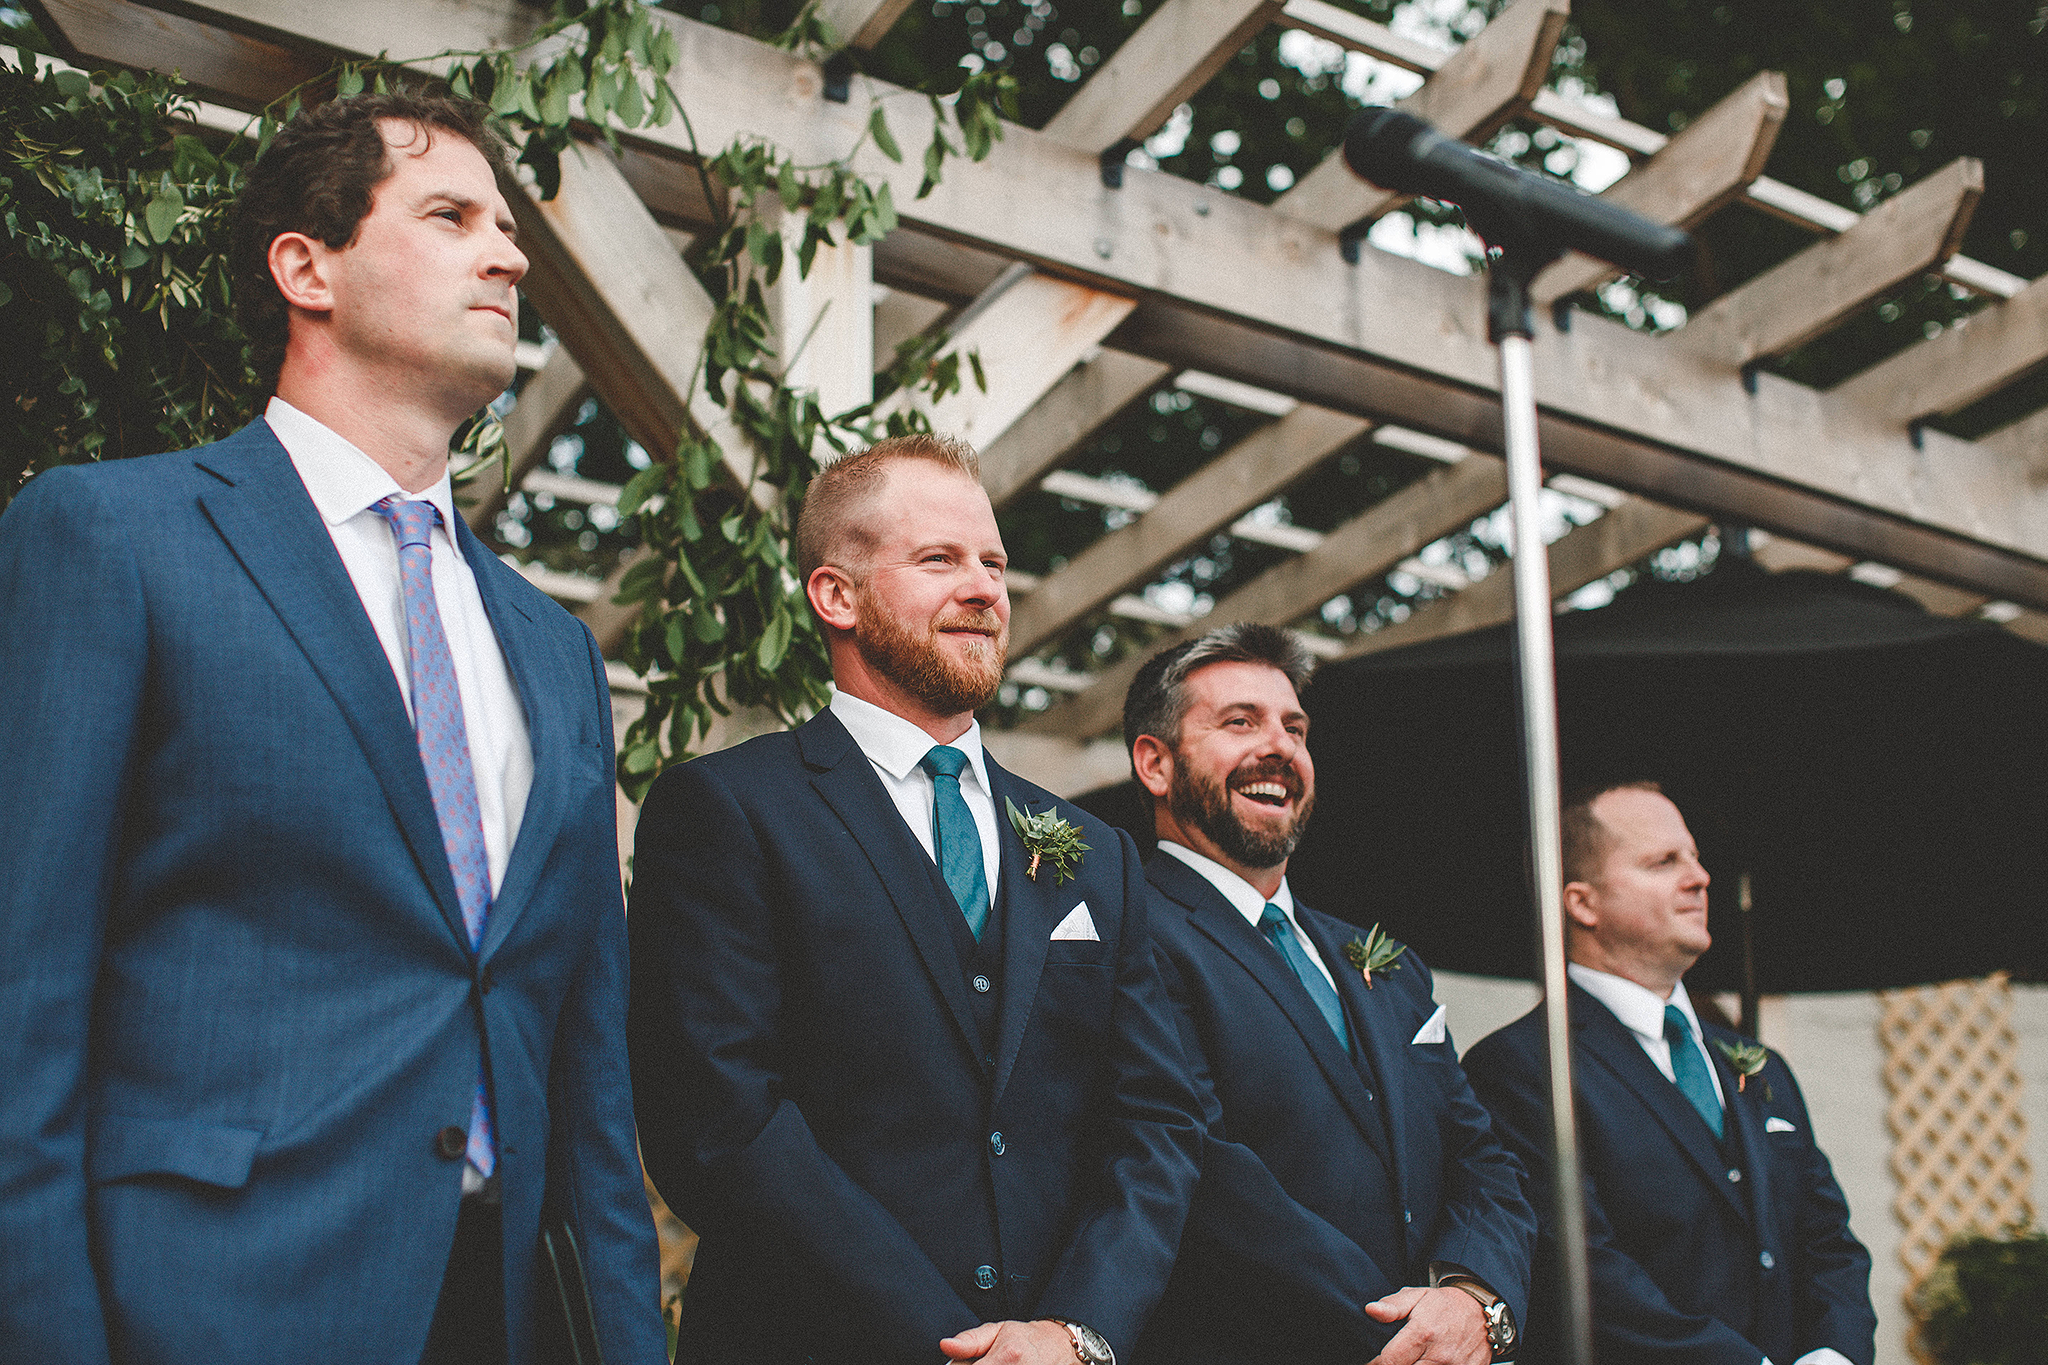 wedding ceremony must-haves | the ivy house milwaukee wedding photographer | chrissy deming